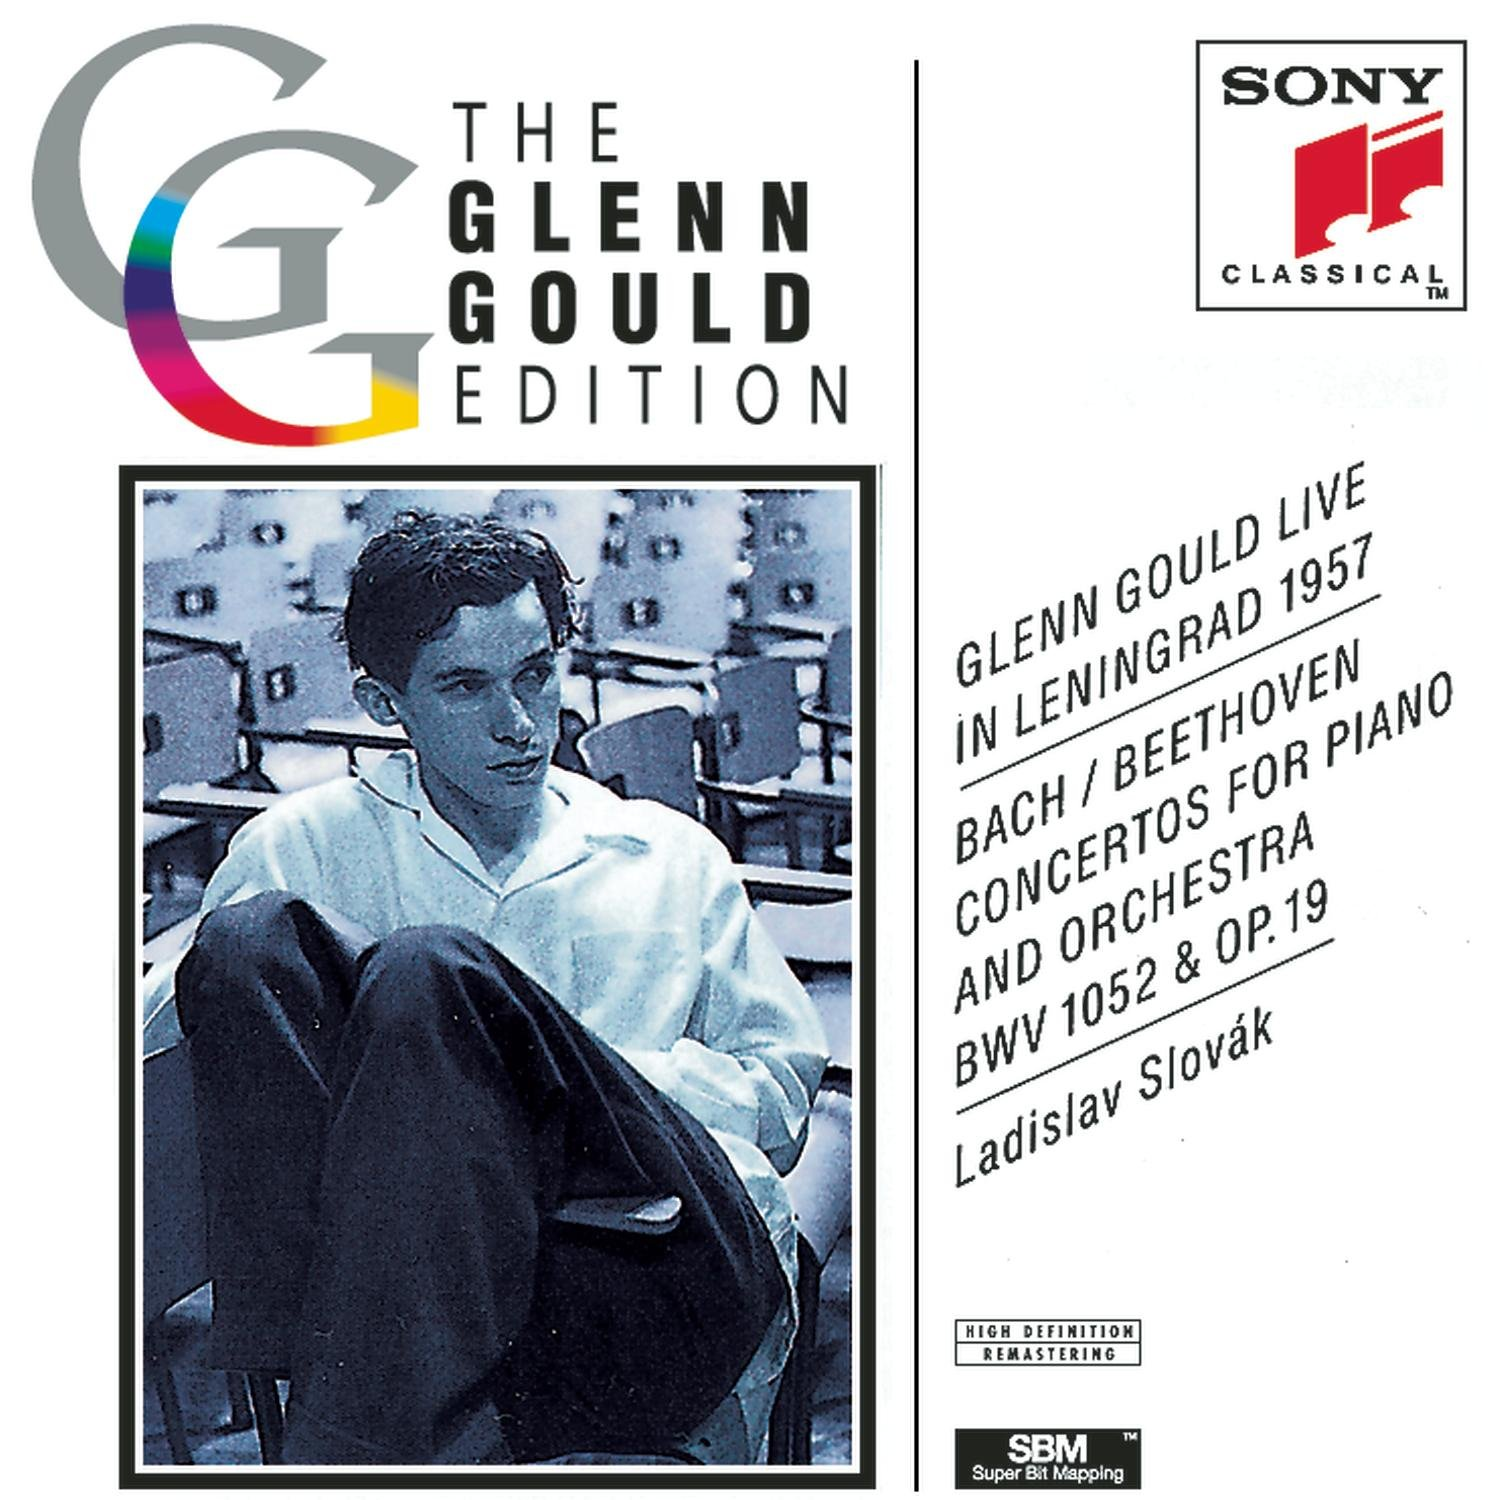 Glenn Gould Live in Leningrad 1957 by Sony Music